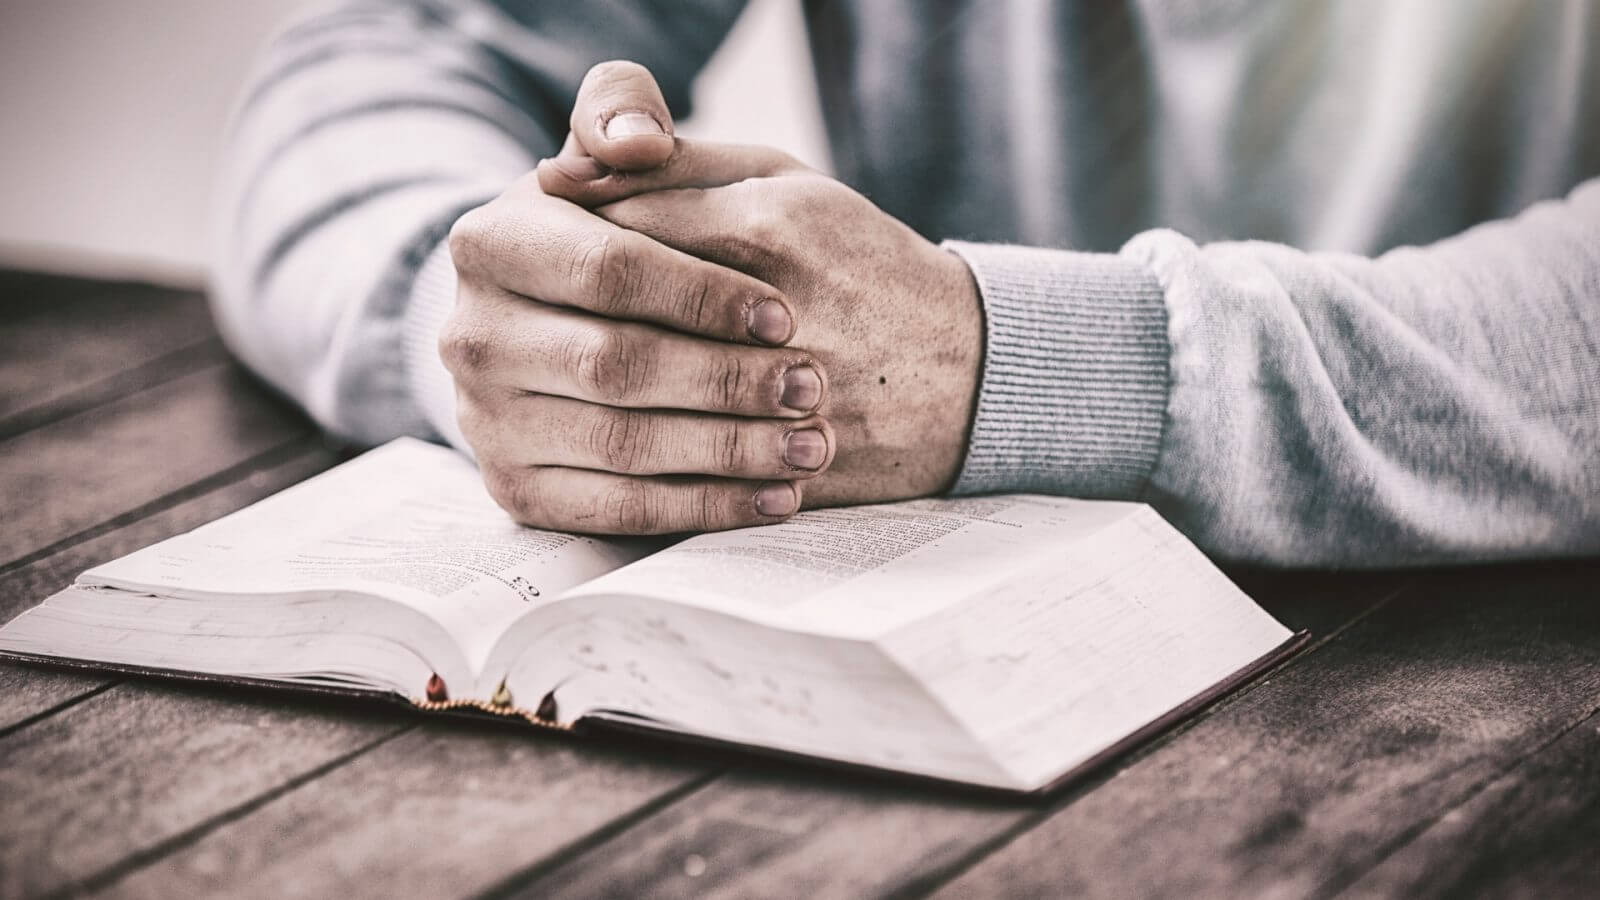 Best Study Bibles | Top 10 Bible Study Books 2018